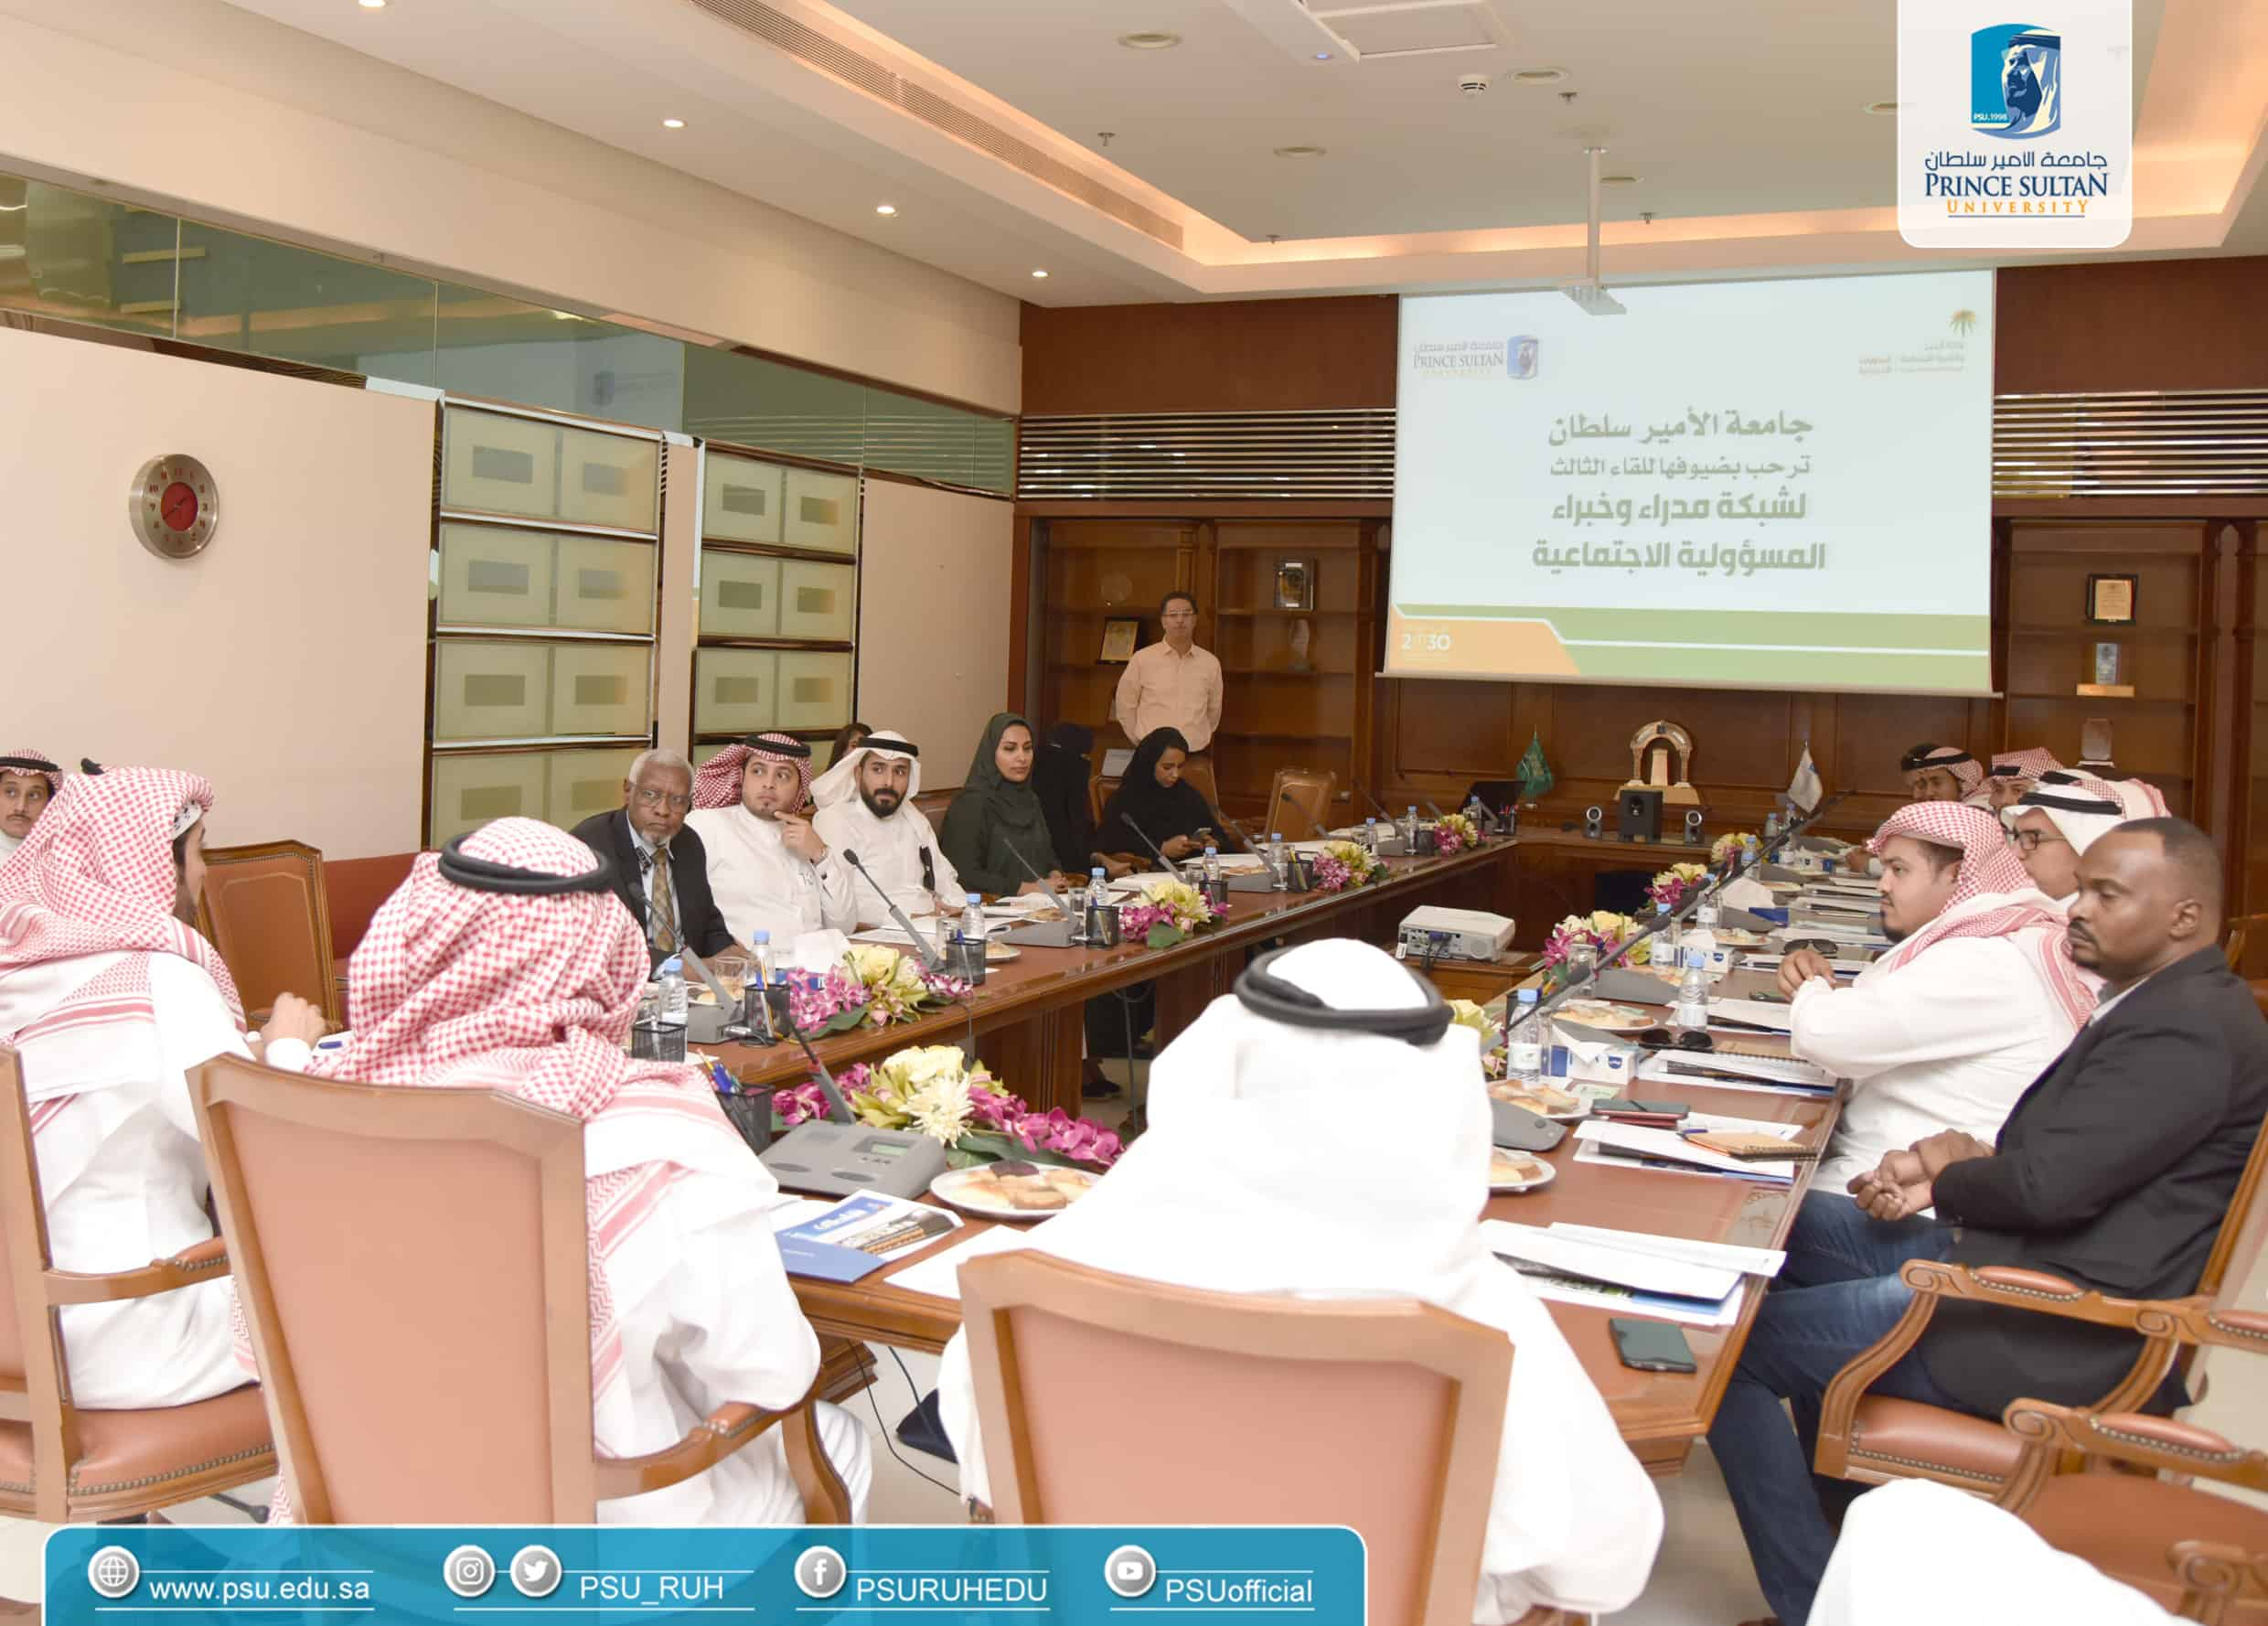 Prince Sultan University Hosts the Third Meeting for the Social Responsibility Managers and Experts Network